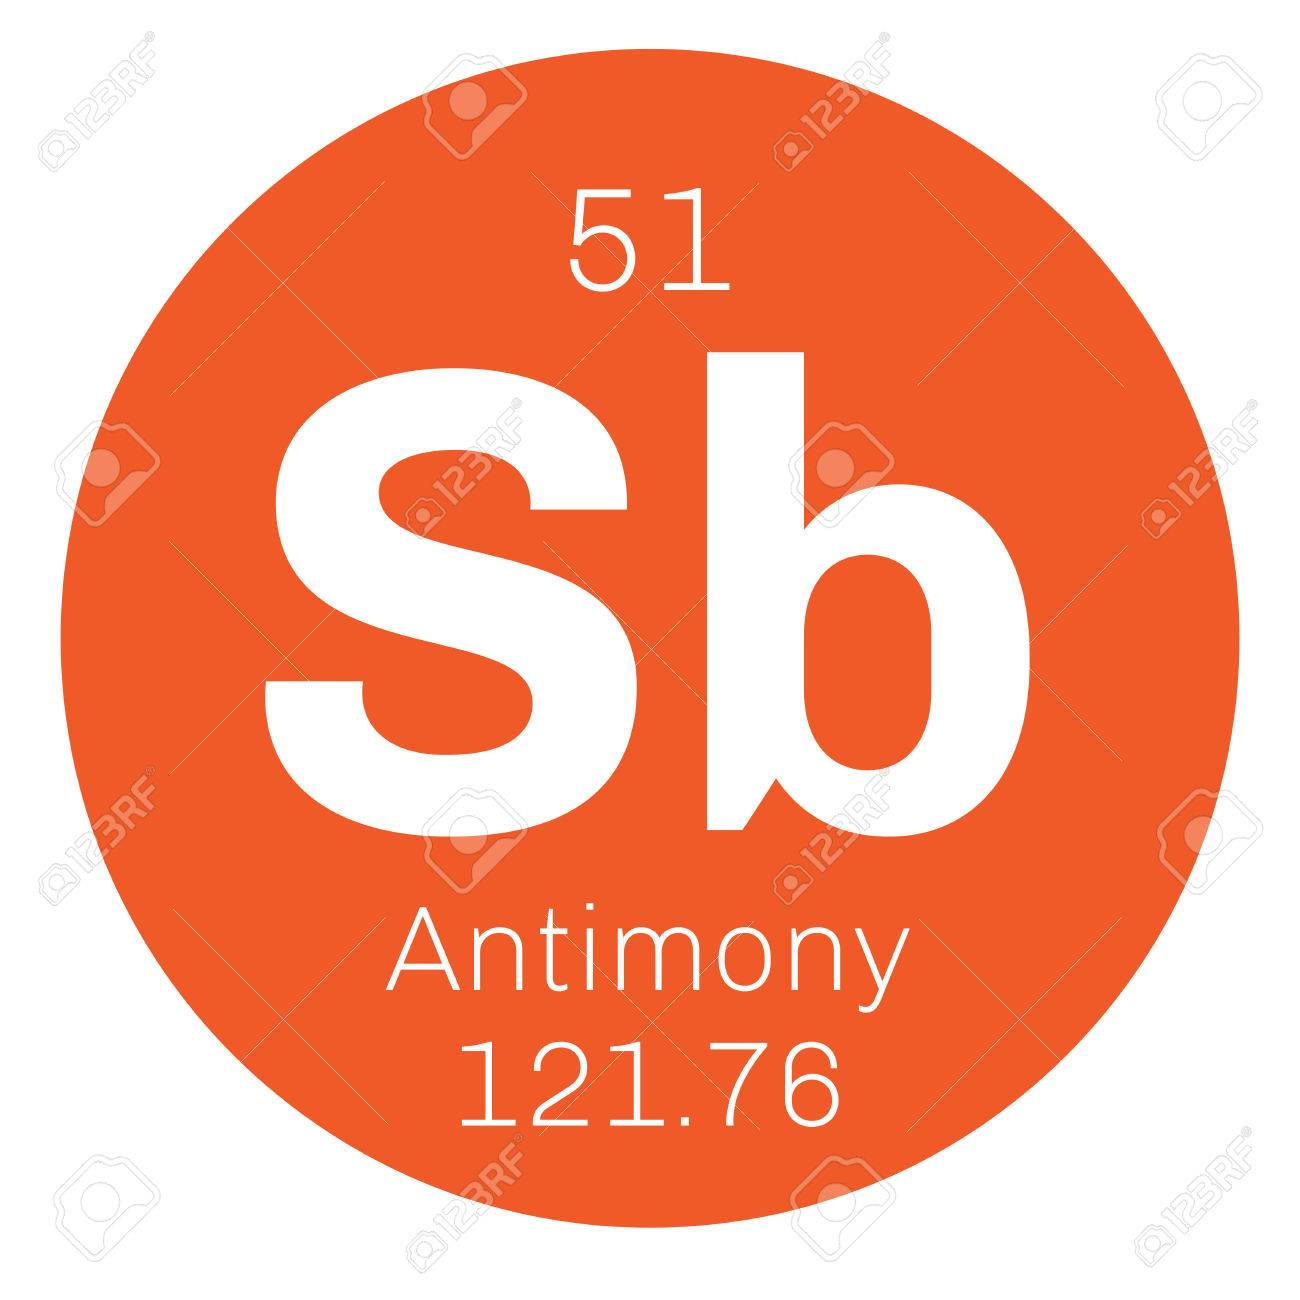 Antimony Chemical Element Gray Metalloid Colored Icon With